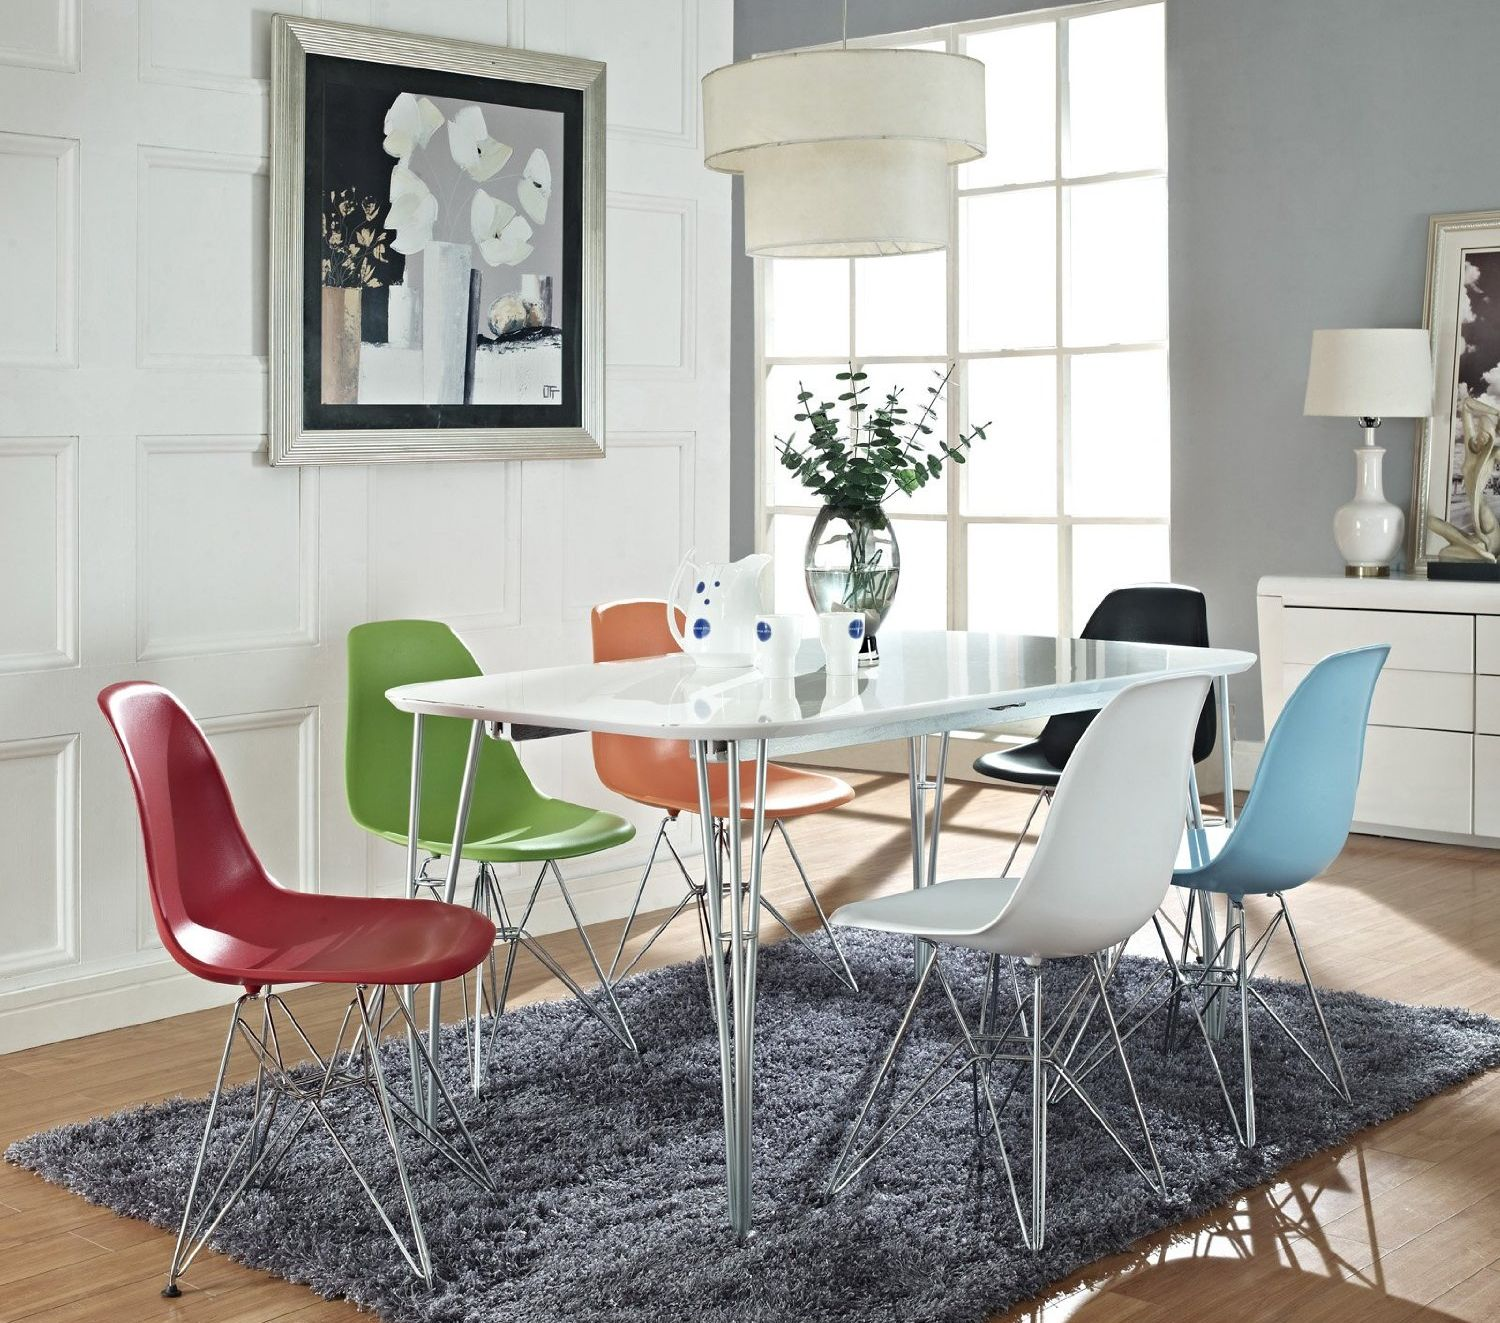 8eclectic accent - Plastic Carpet Mat For Dining Room